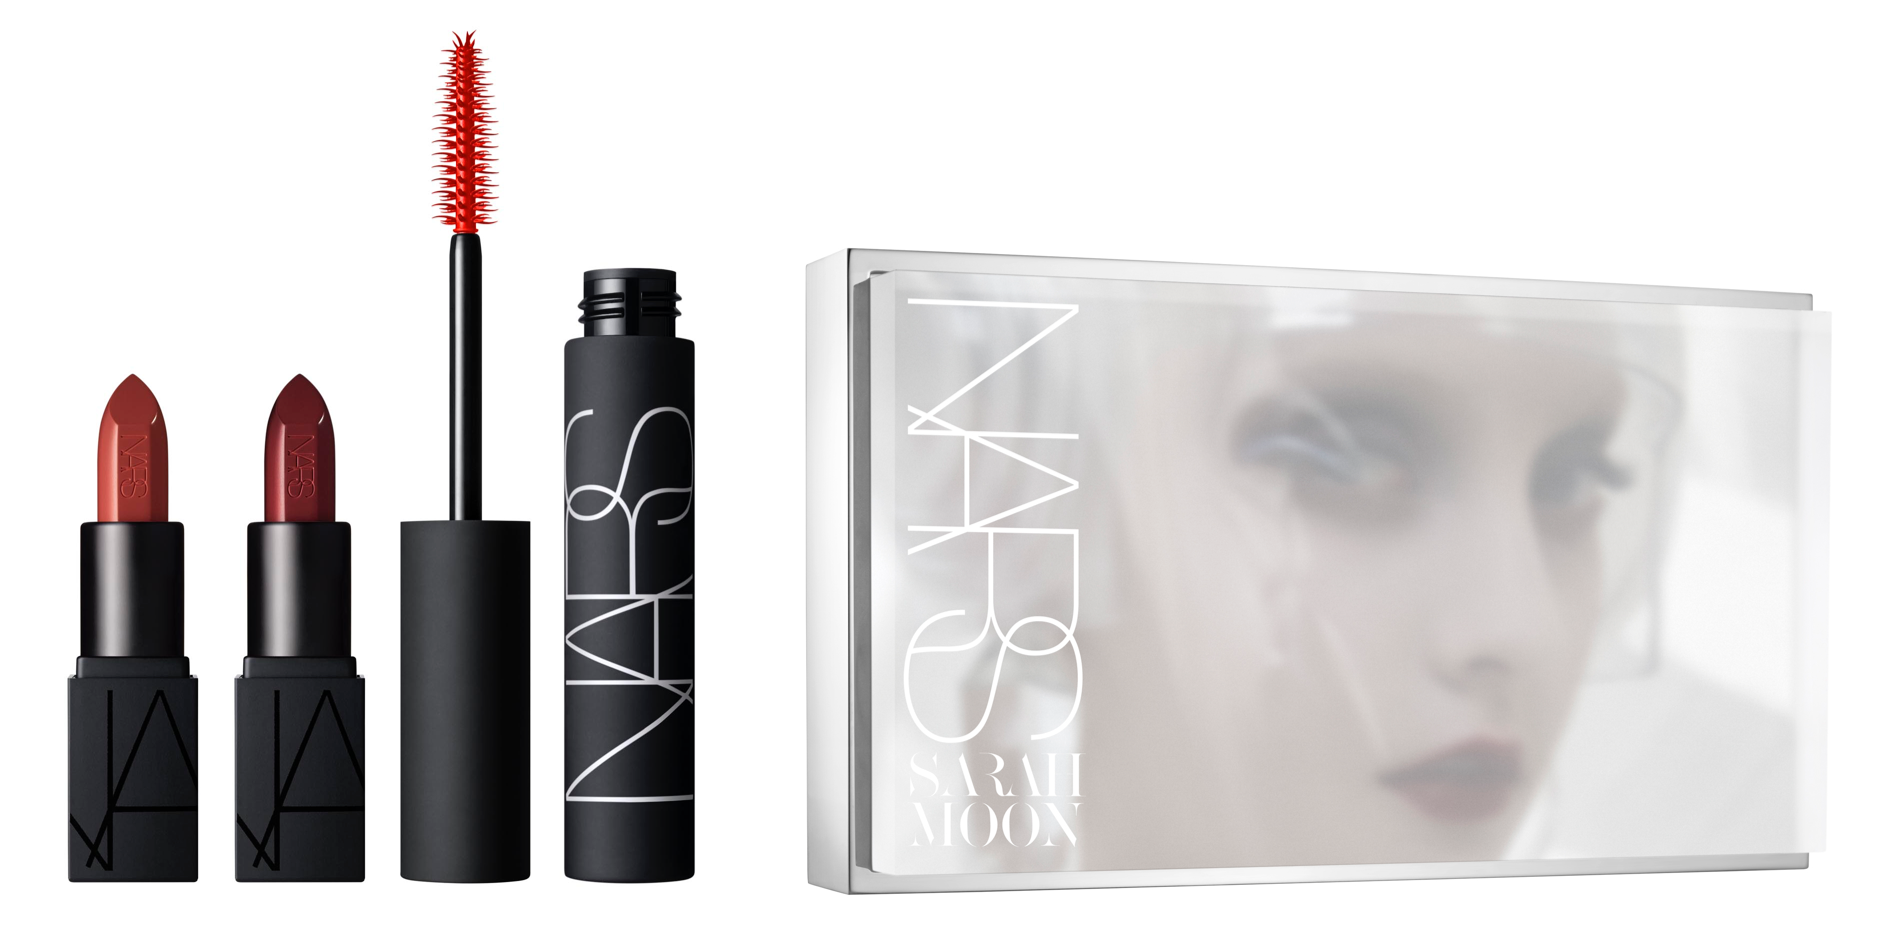 how to get a job at nars cosmetics